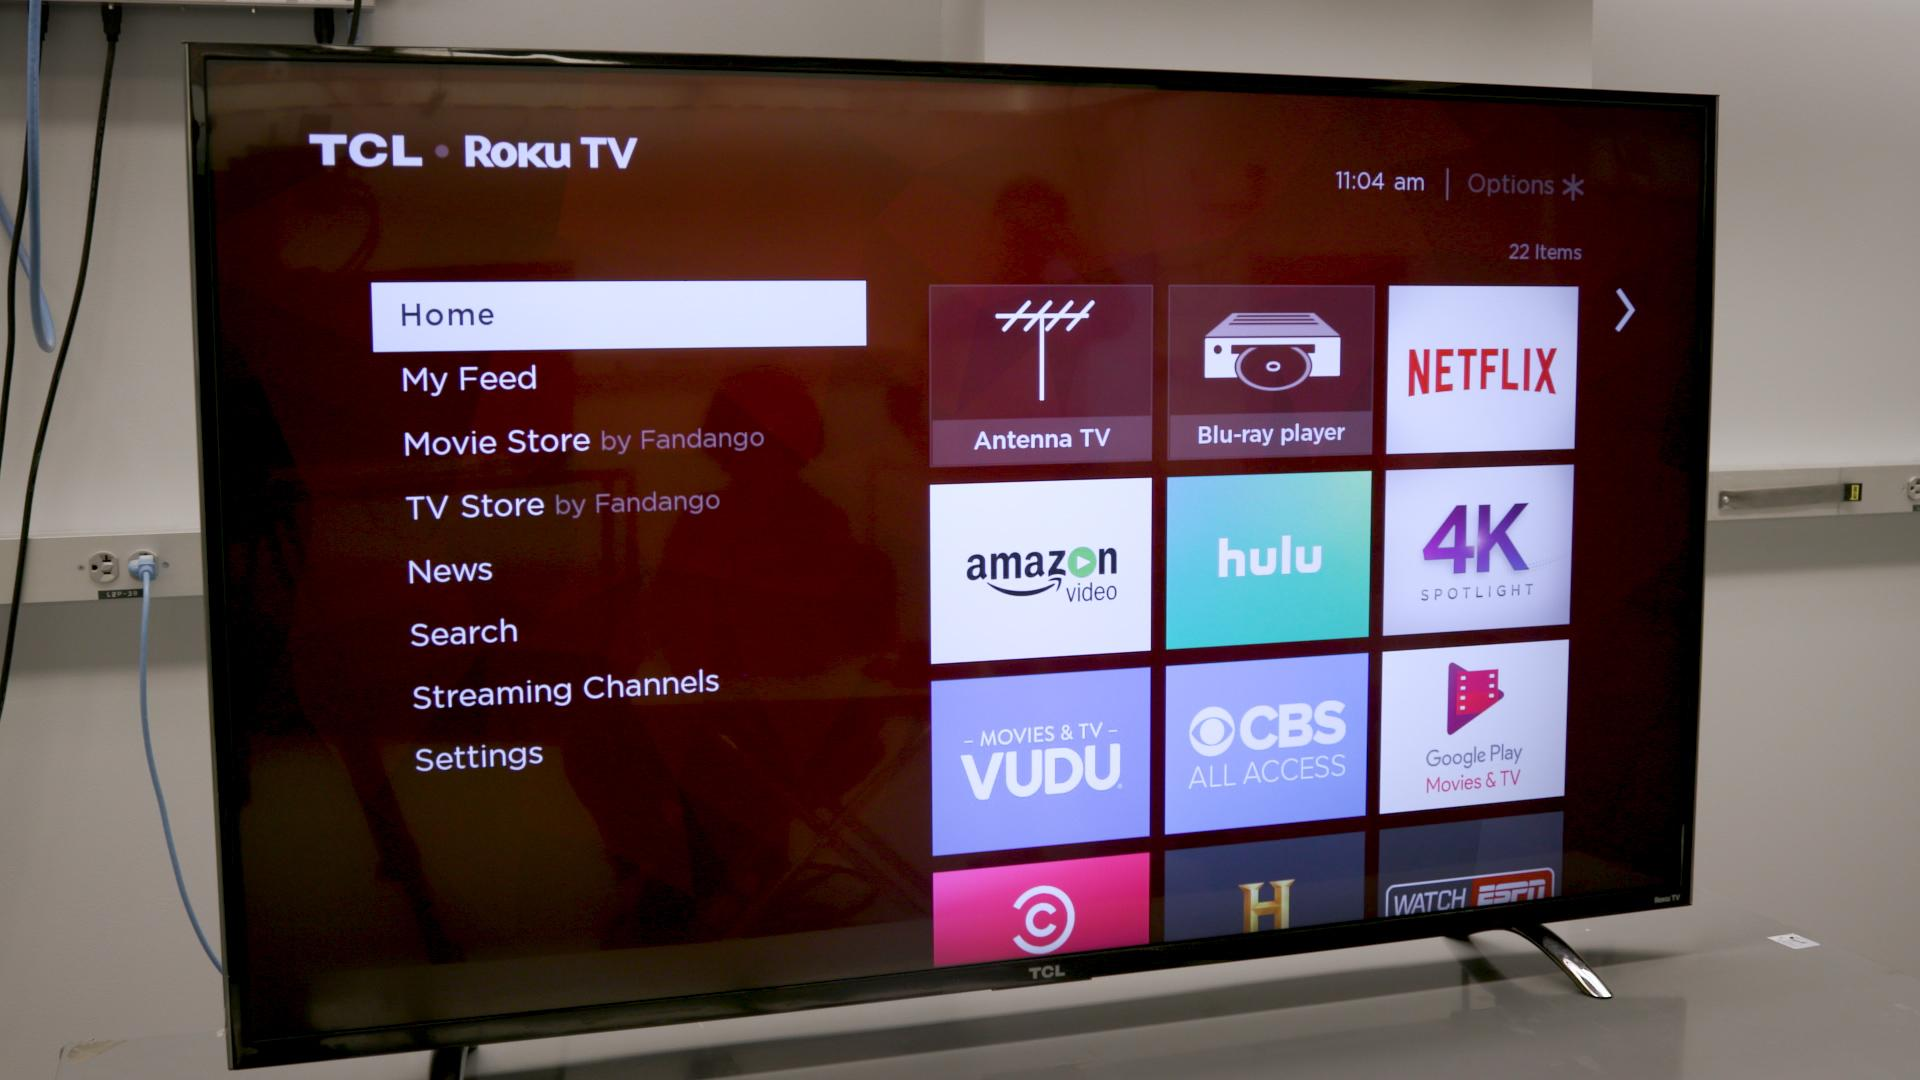 Samsung and Roku Smart TVs Vulnerable to Hacking - Consumer